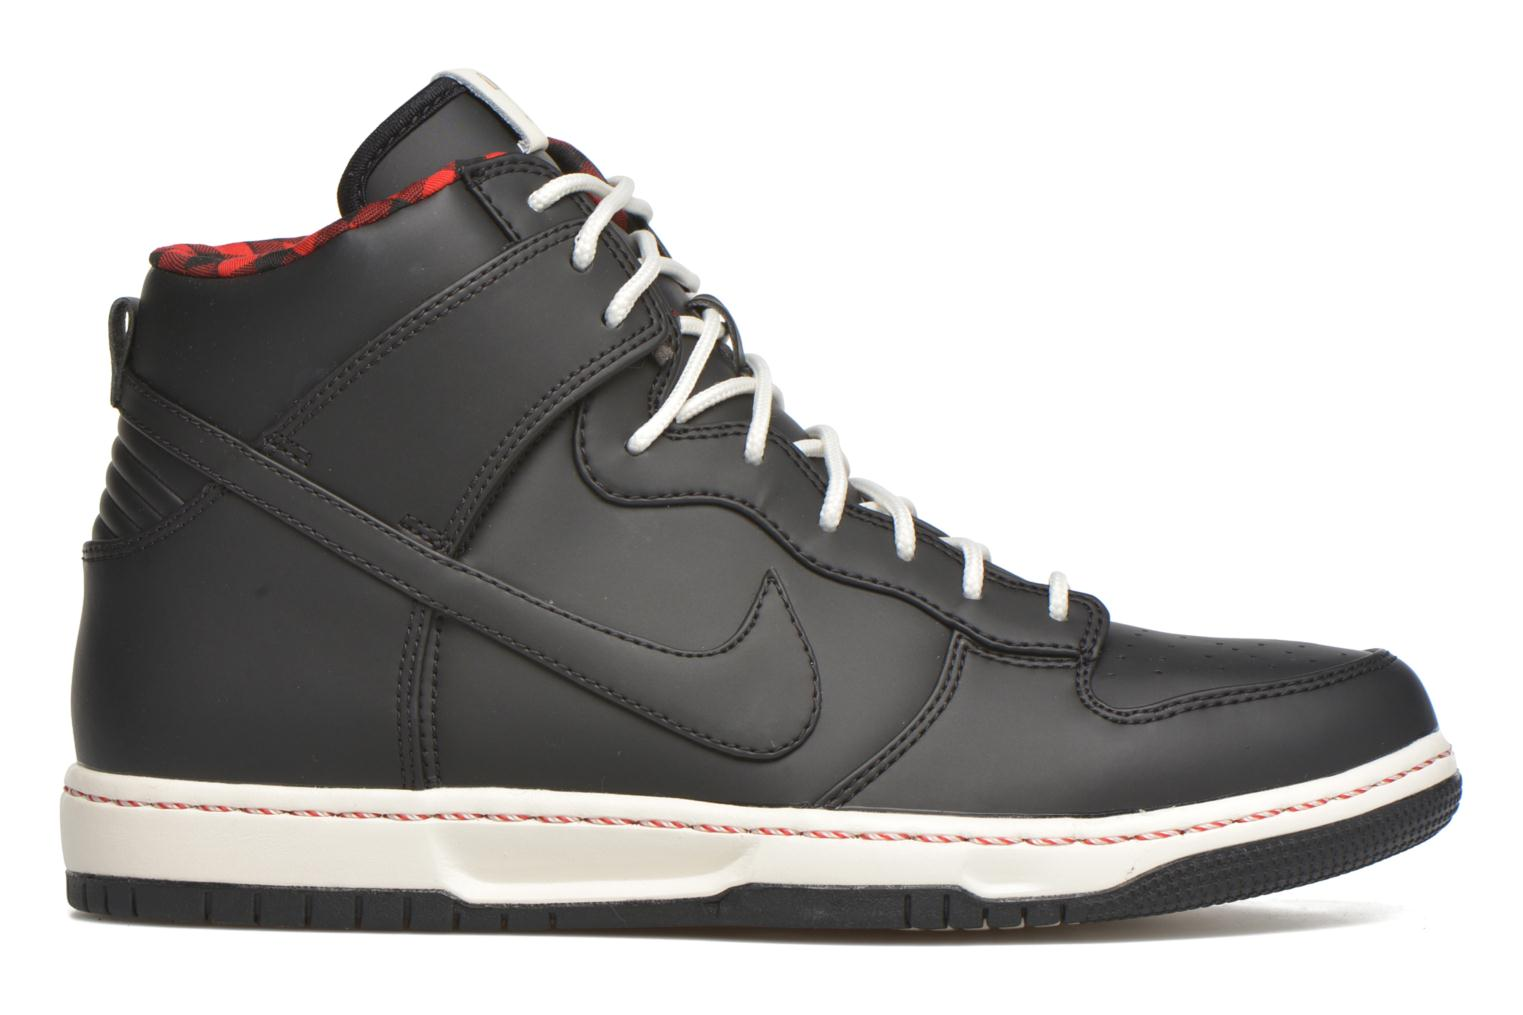 Nike Dunk Ultra Black/Black-Sail-Sport Red